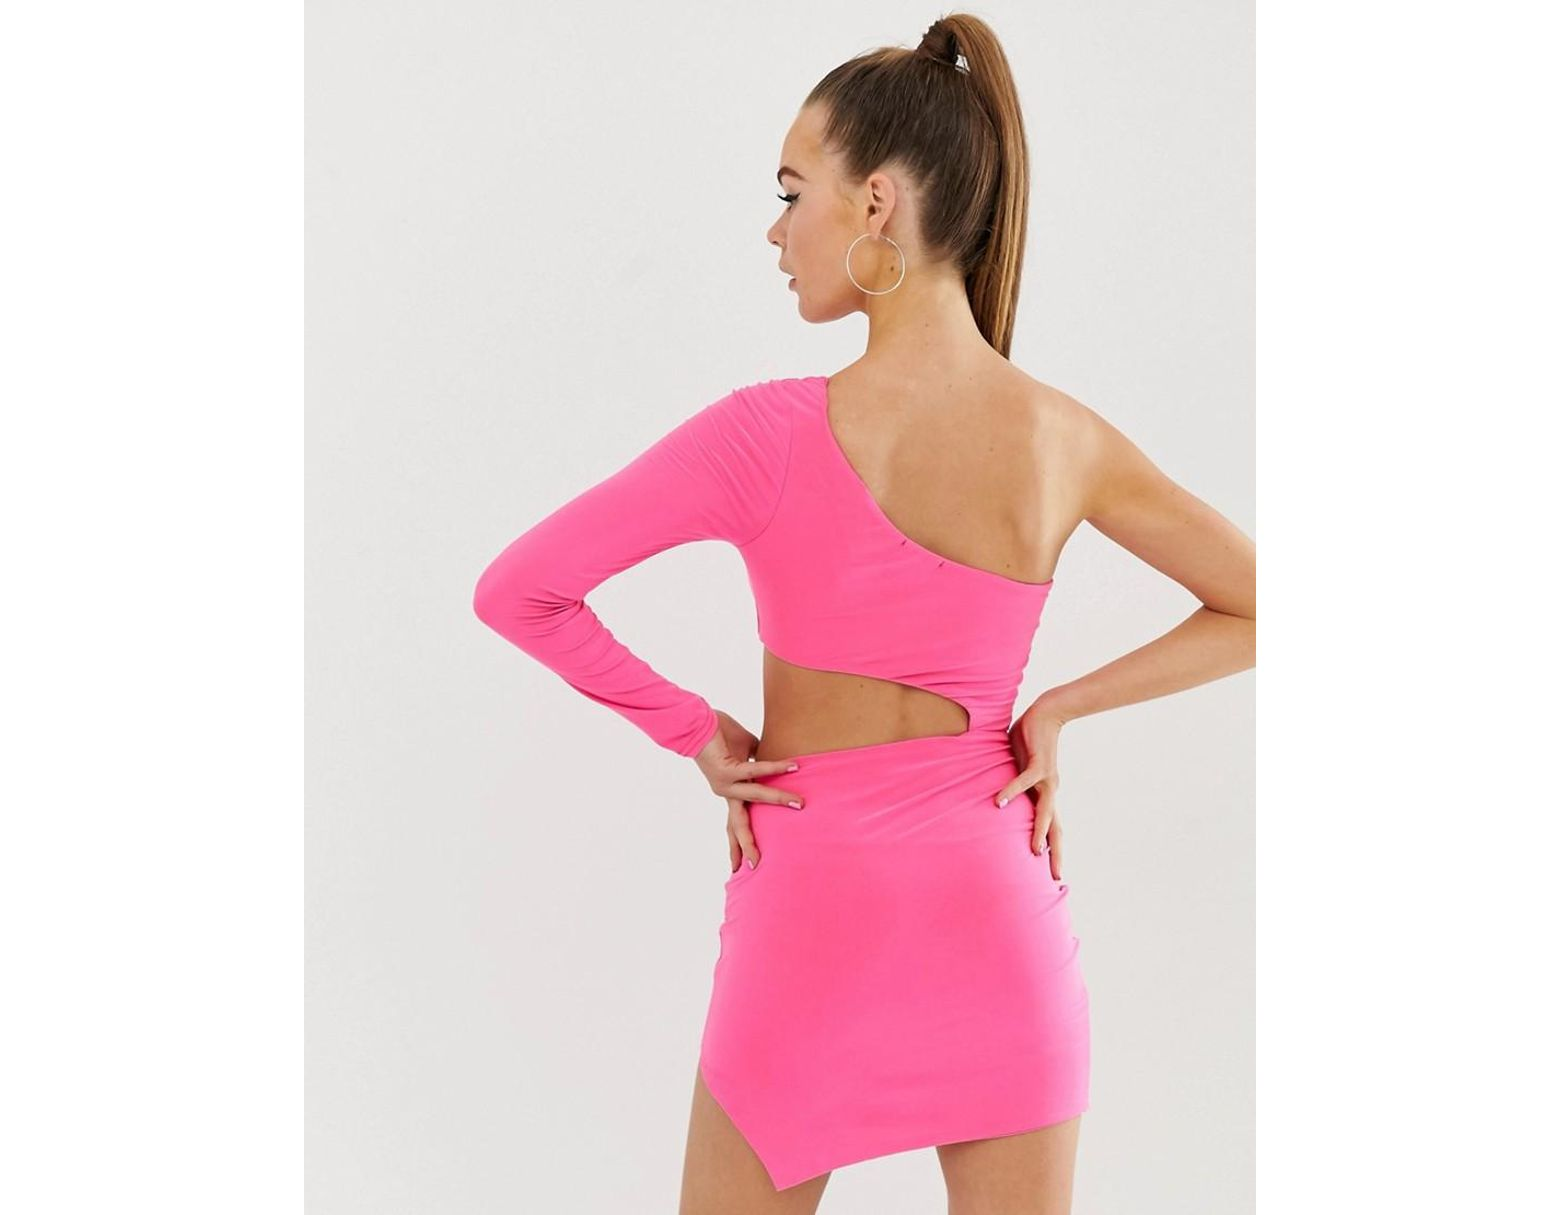 5231f38fdcc Women's One Shoulder Cut Out Bodycon Dress In Neon Pink